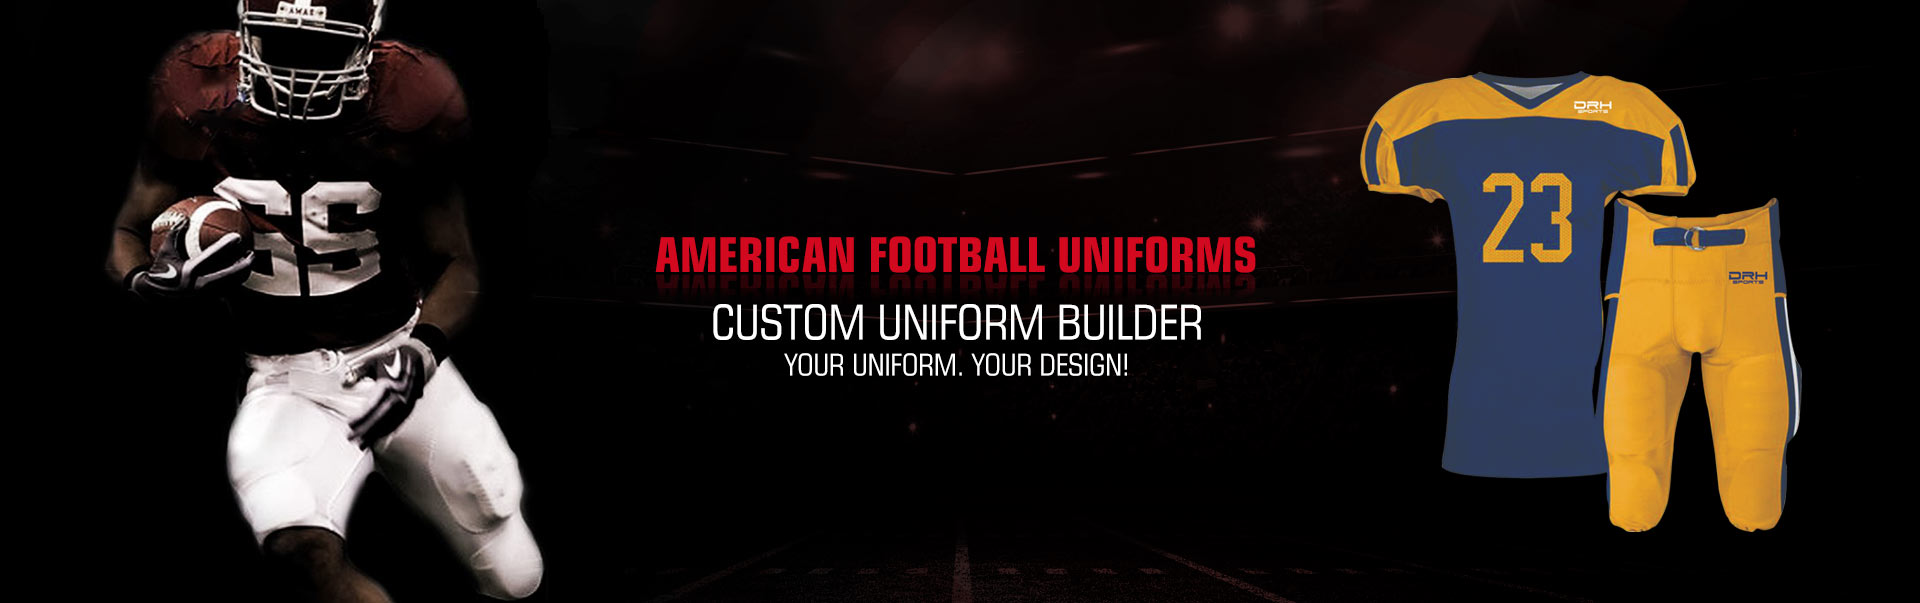 American Football Uniform Wholesaler, Suppliers in Oxford